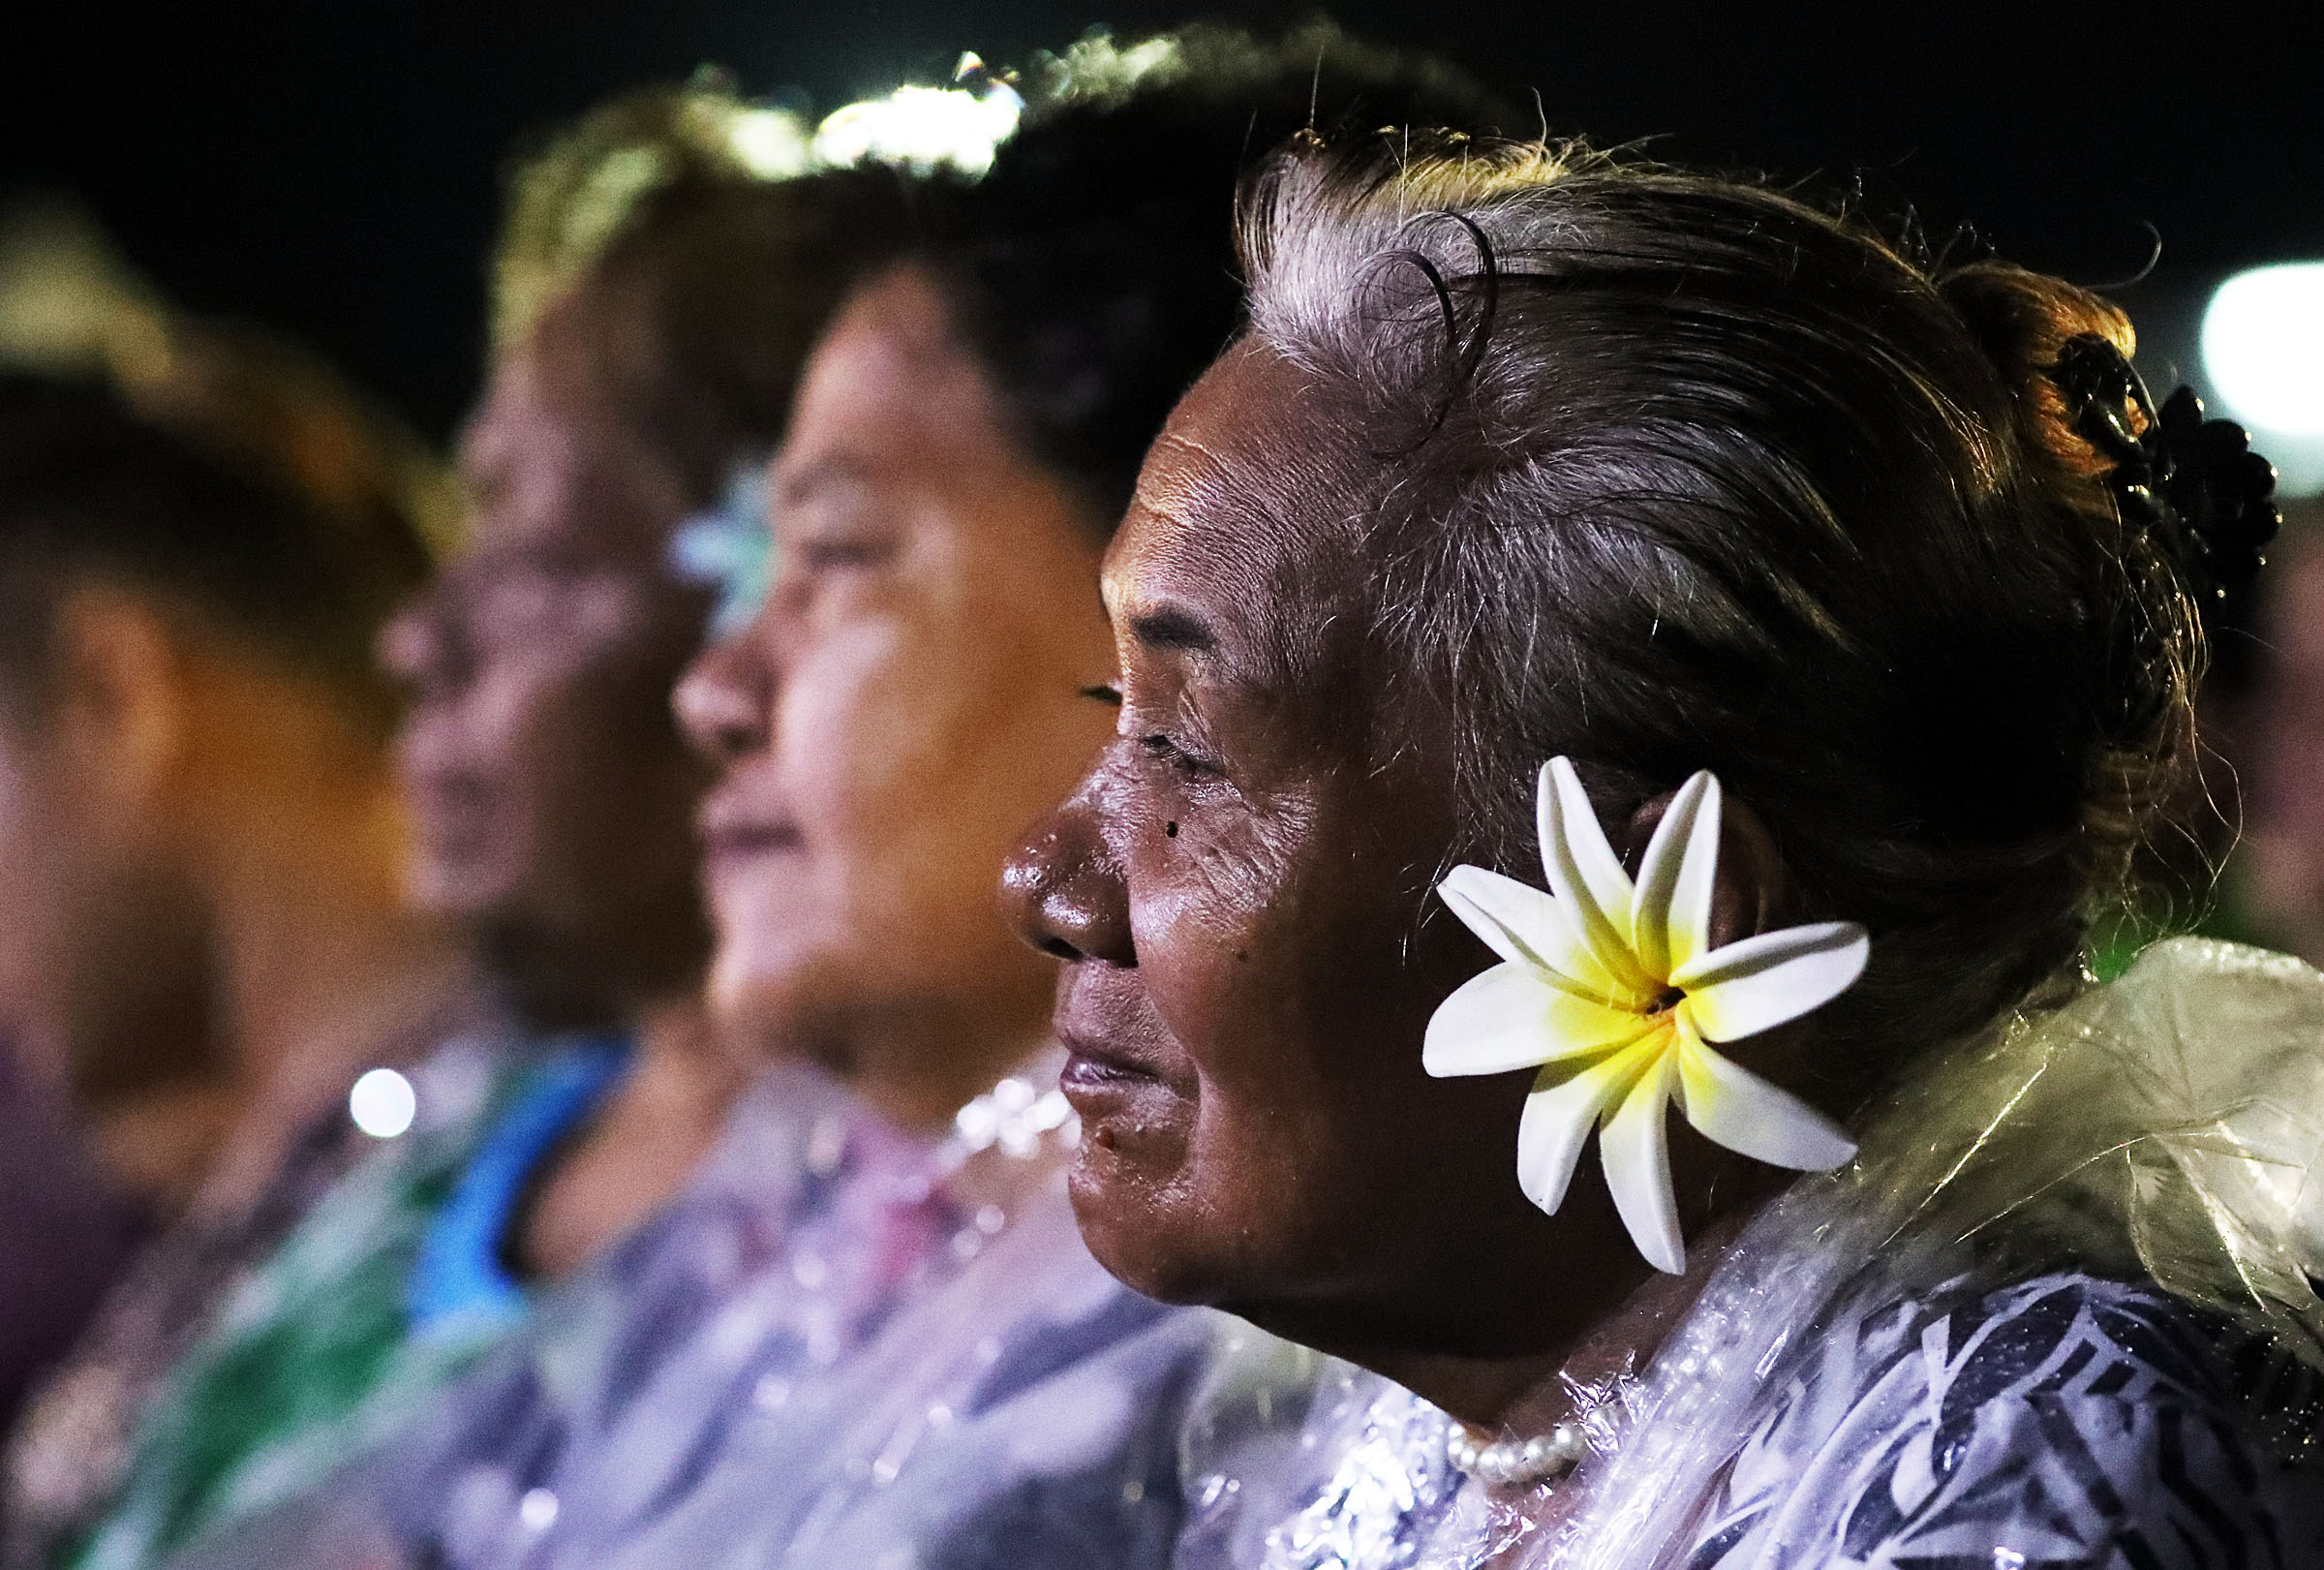 Malia Fale listens during a devotional with President Russell M. Nelson of The Church of Jesus Christ of Latter-day Saints in Apia, Samoa, on Saturday, May 18, 2019.